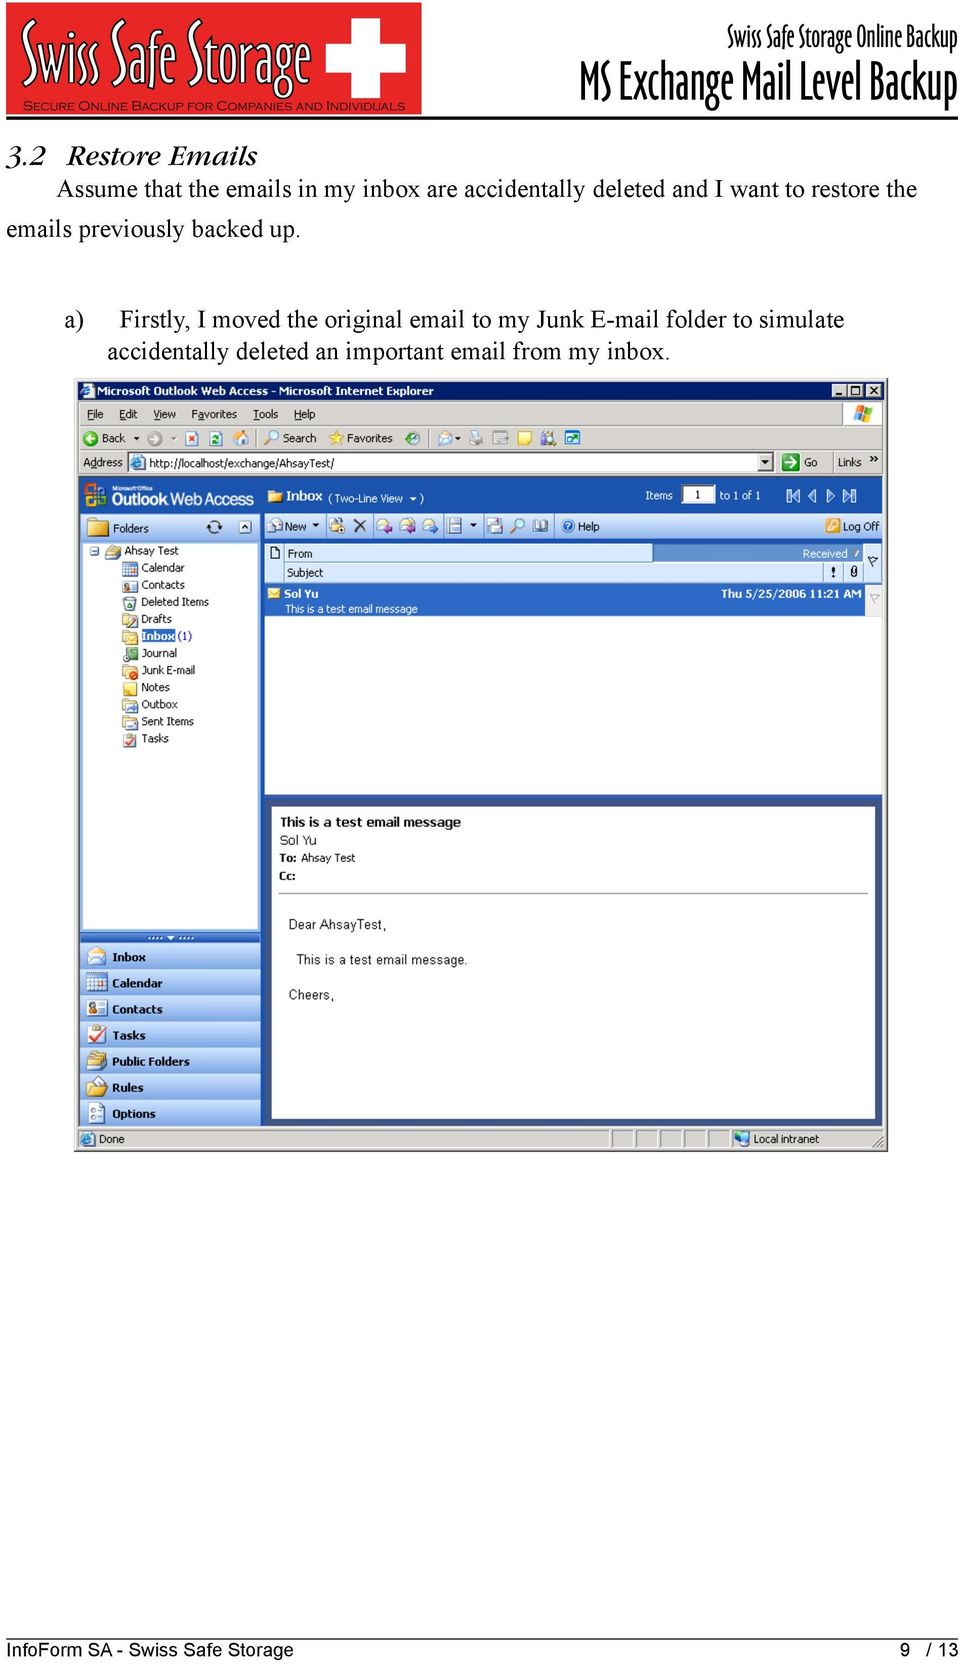 Swiss Safe Storage Online Backup a) Firstly, I moved the original email to my Junk